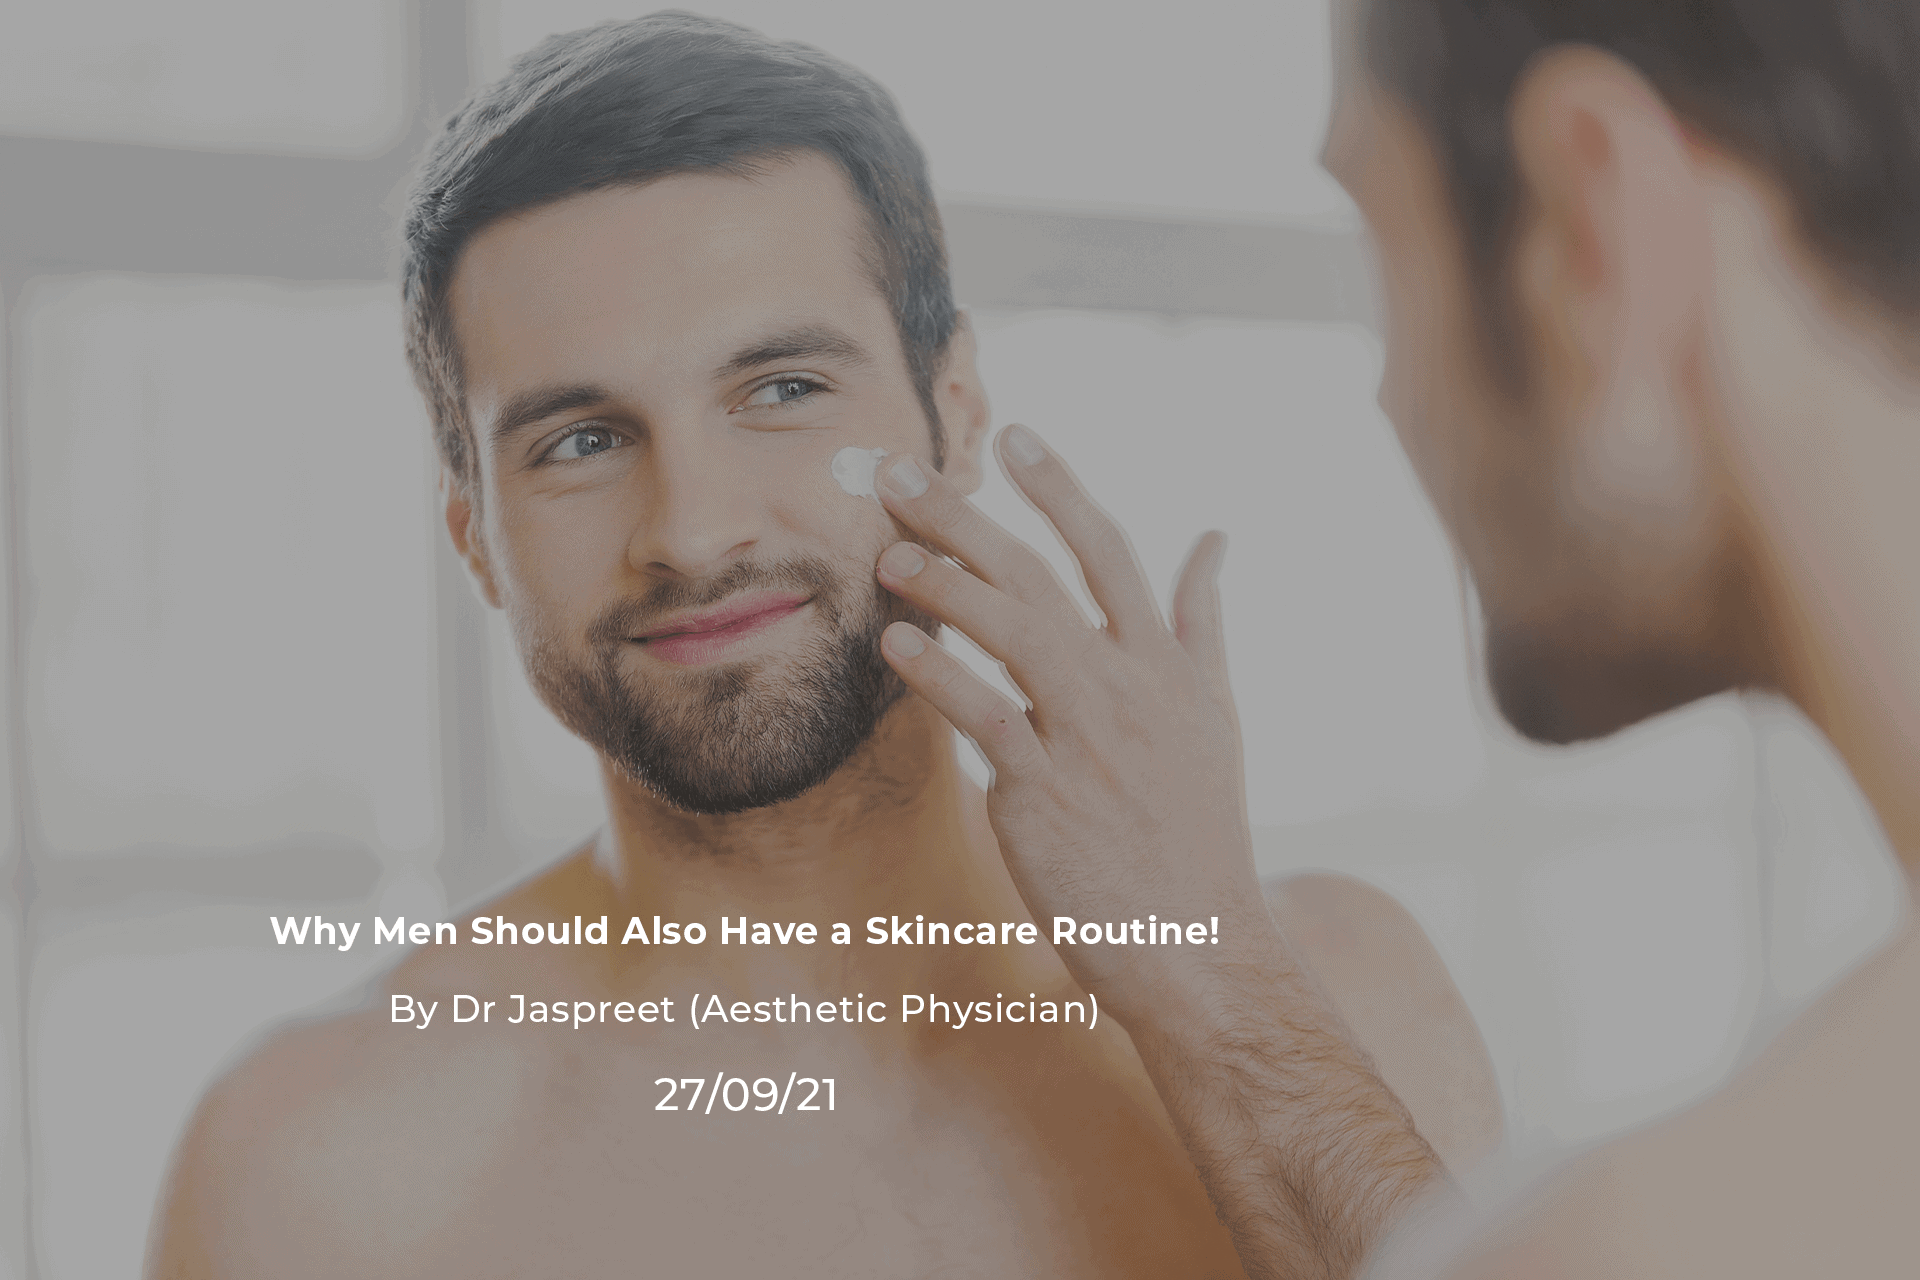 Why Men Should Also Have a Skincare Routine!